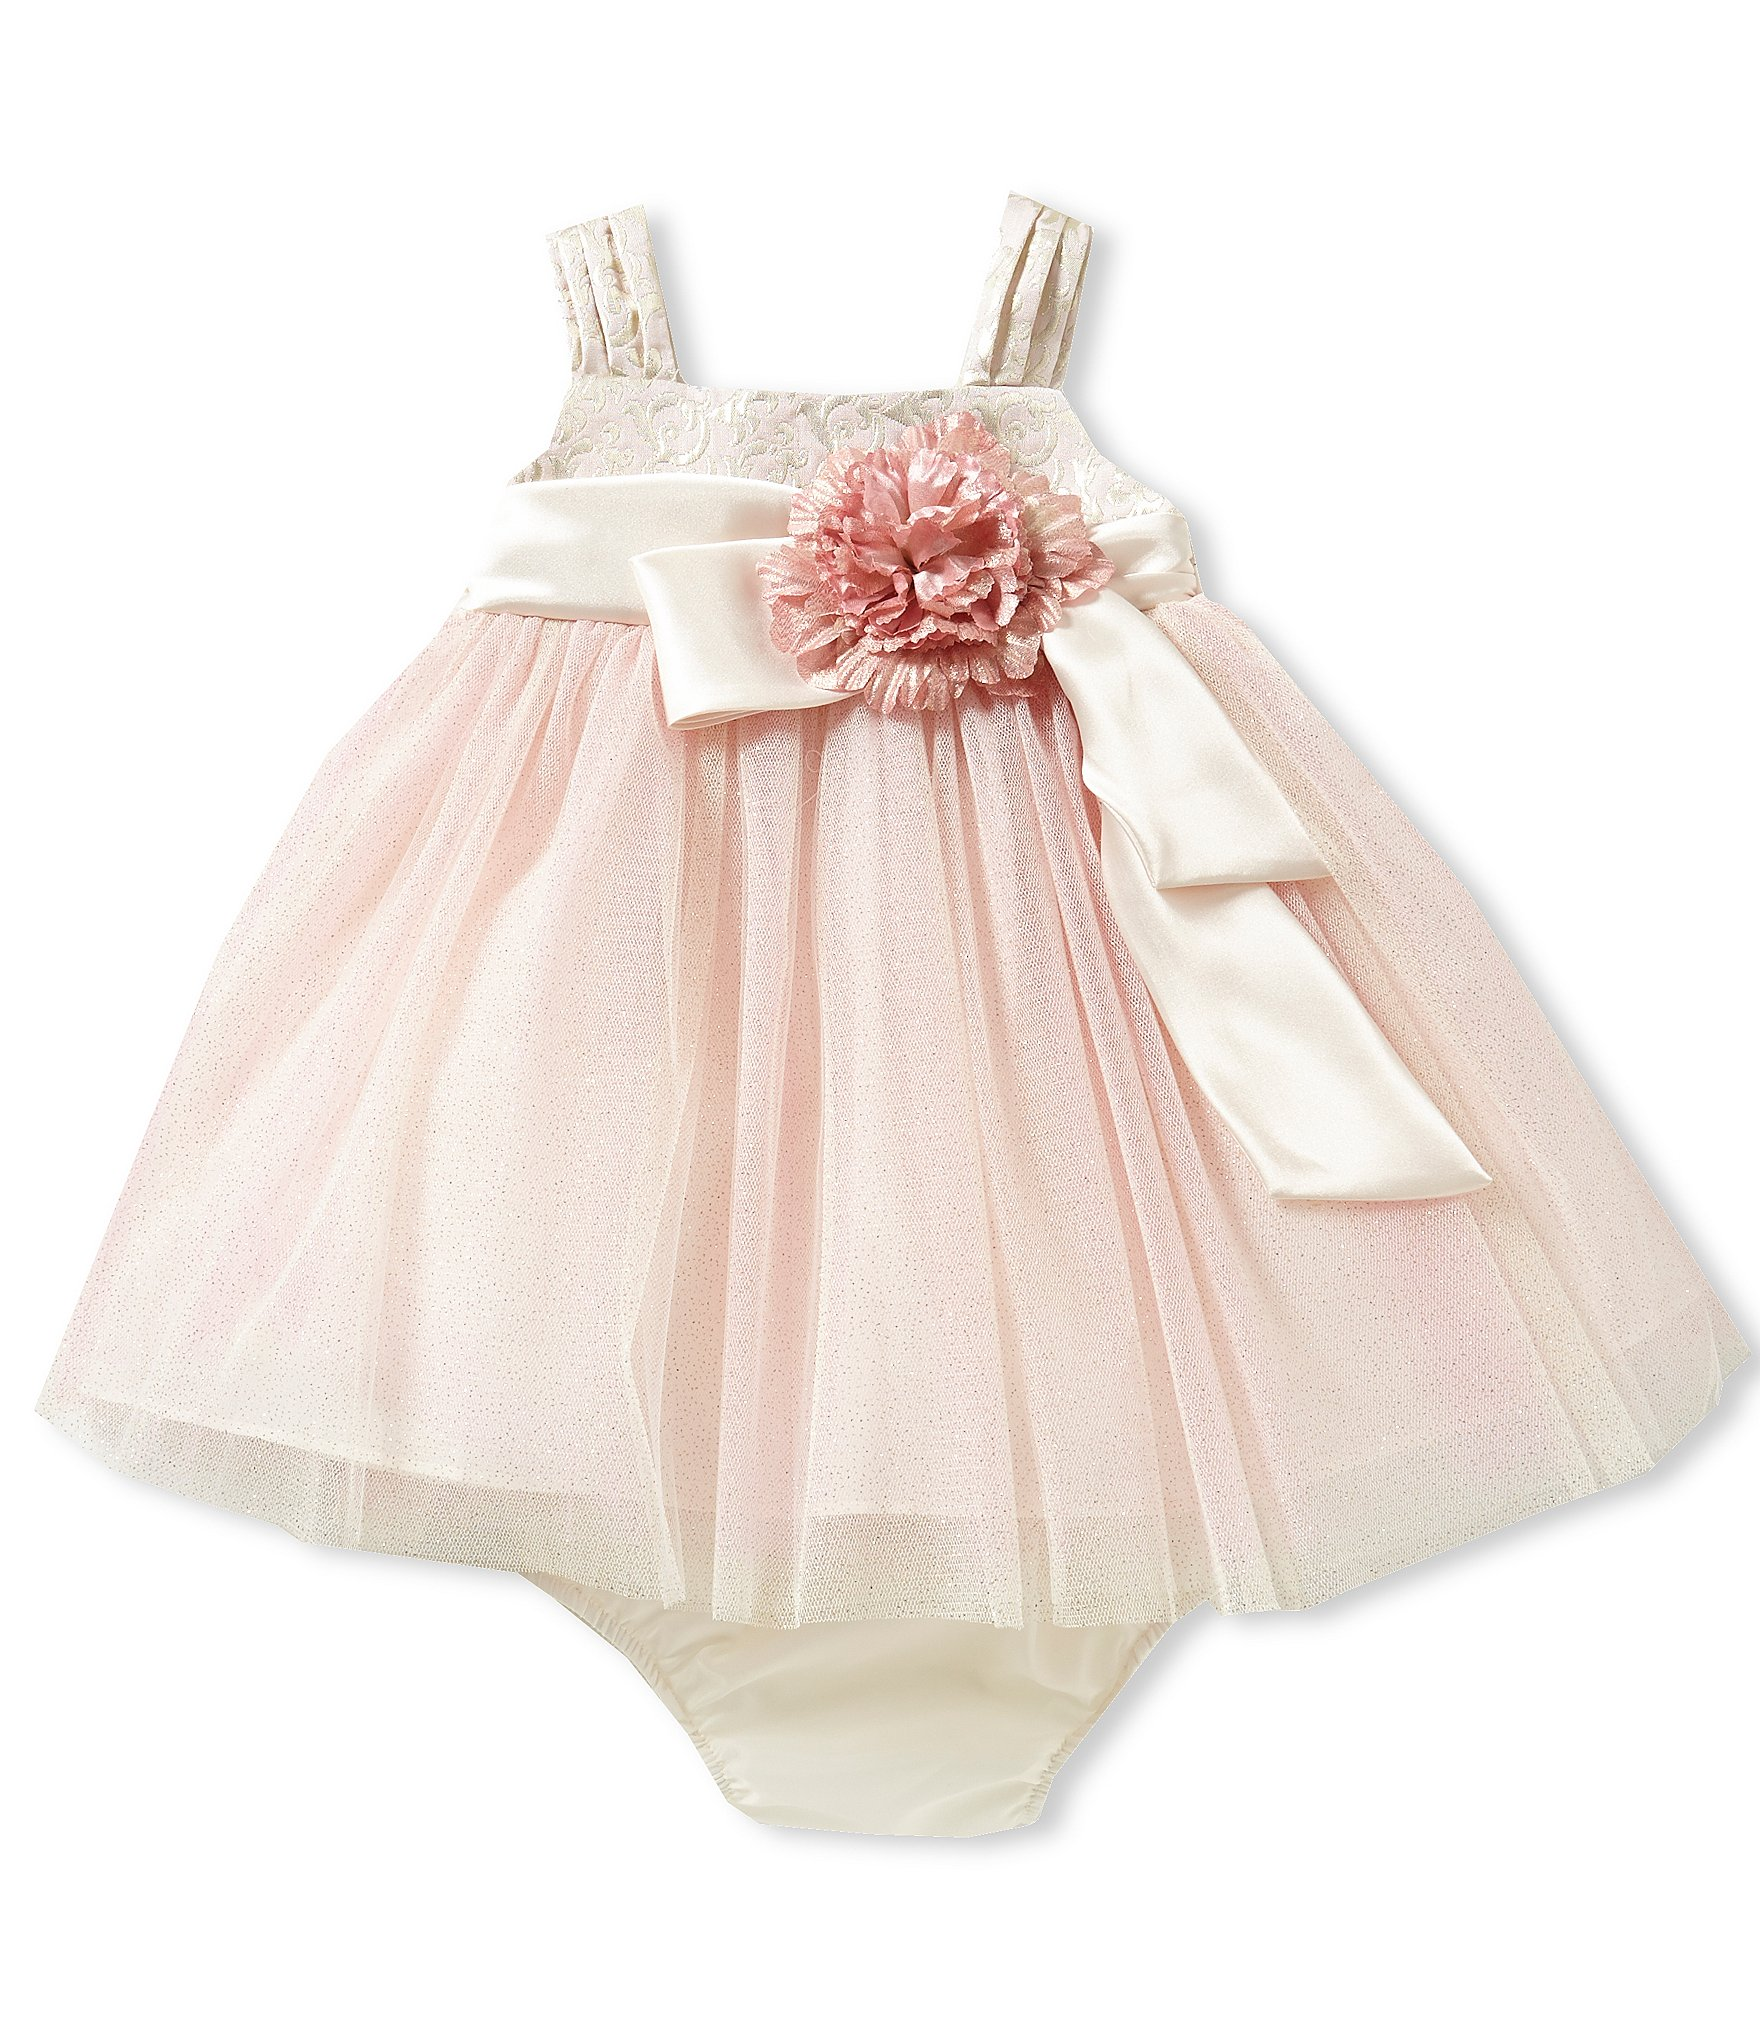 Find a wide selection of baby blessing dresses, temple clothing, and other white clothing. We also sell modest dresses for women.